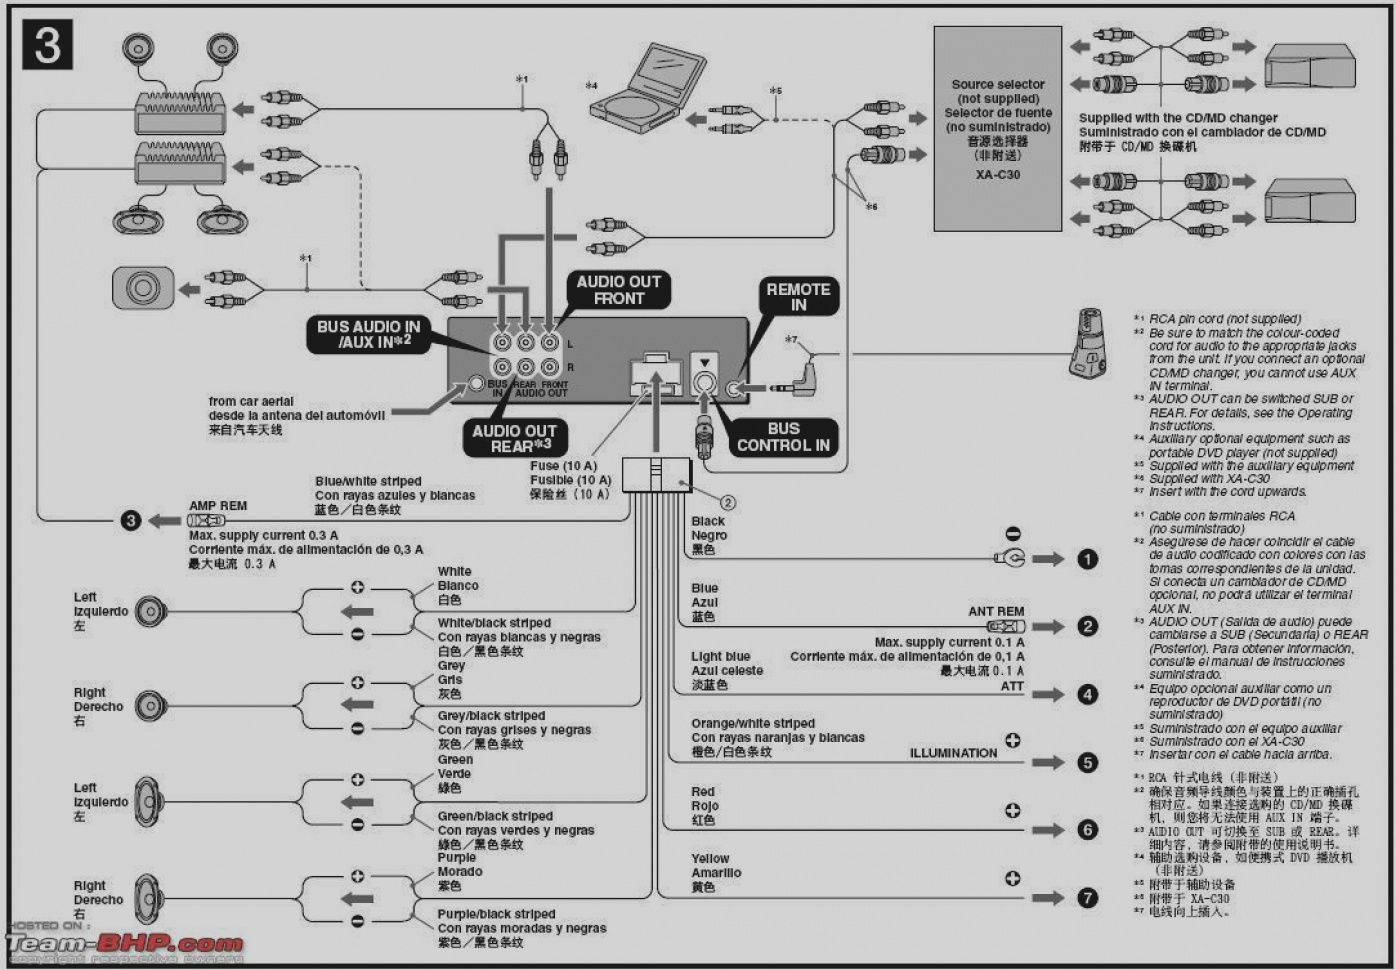 sony cdx gt170 wiring diagram heat 3 way switch wiring, sonysony cdx gt170 wiring diagram